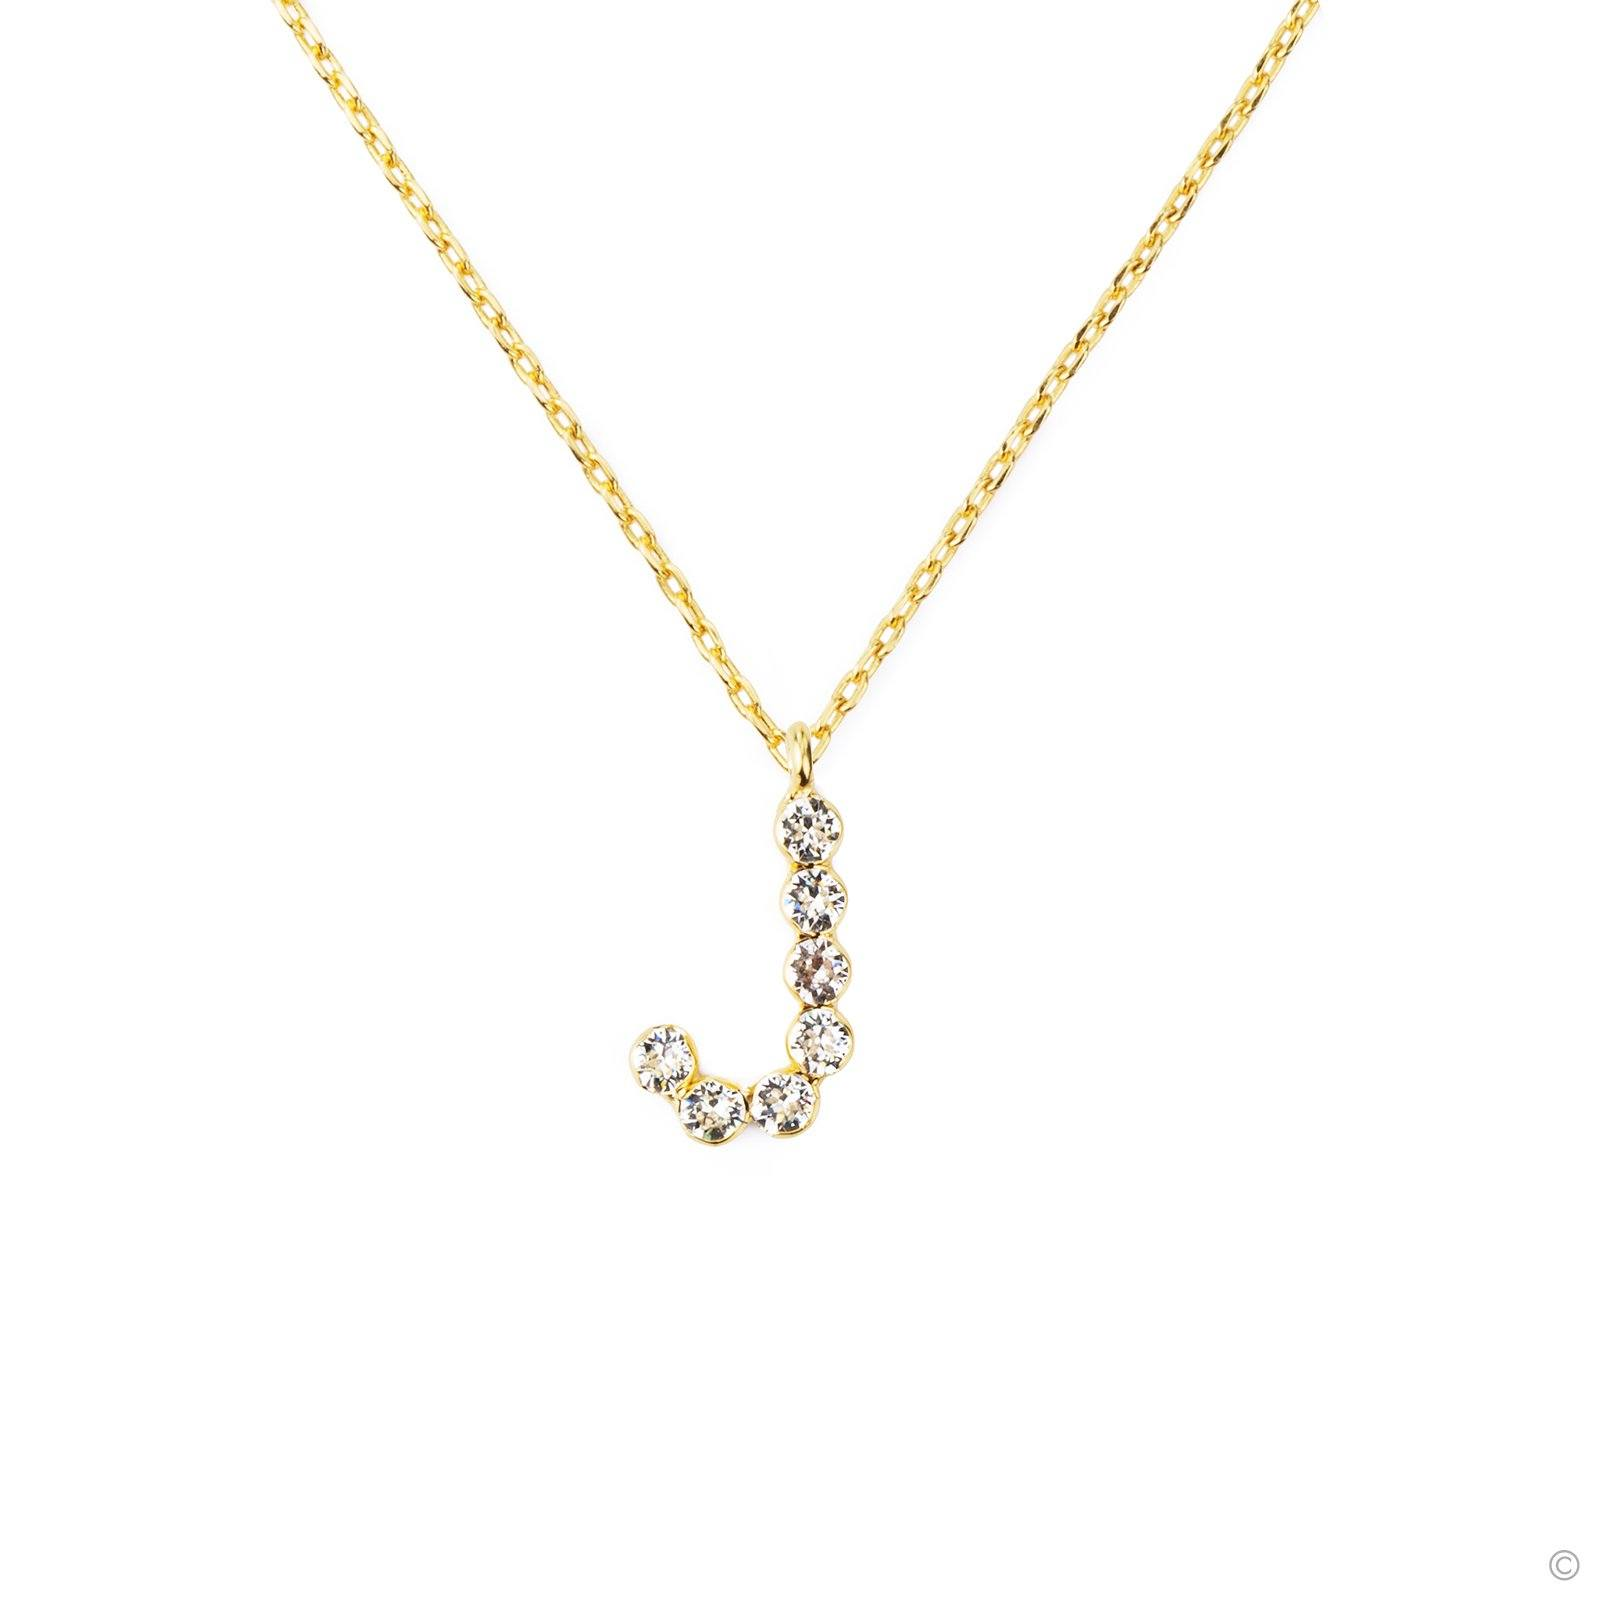 957a671deae6 J Crystal Necklace – Coravana